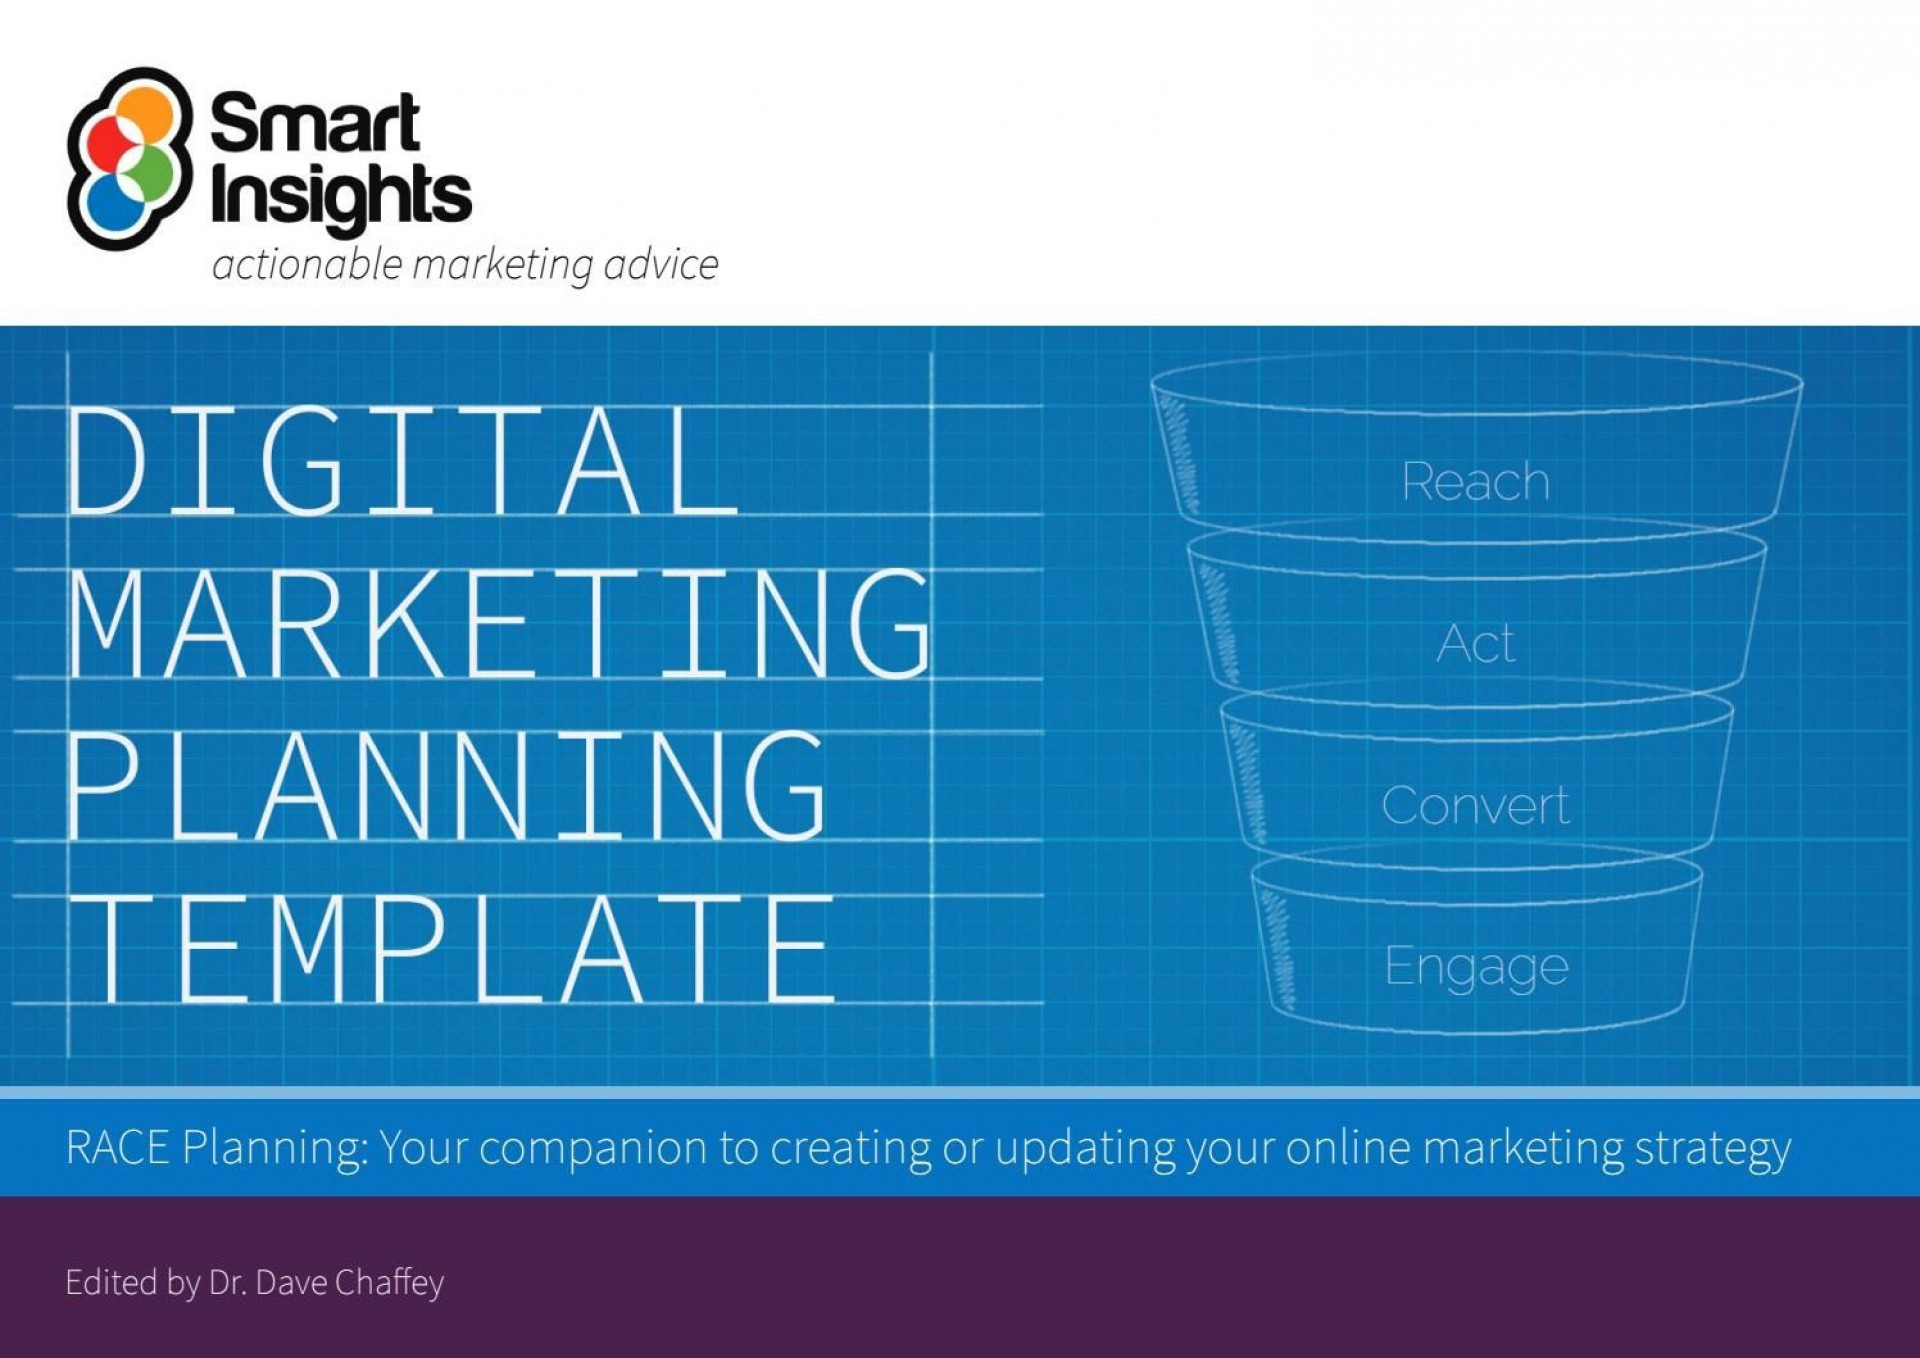 007 Amazing Digital Marketing Strategy Template Sample  2019 Pdf Doc Planning1920